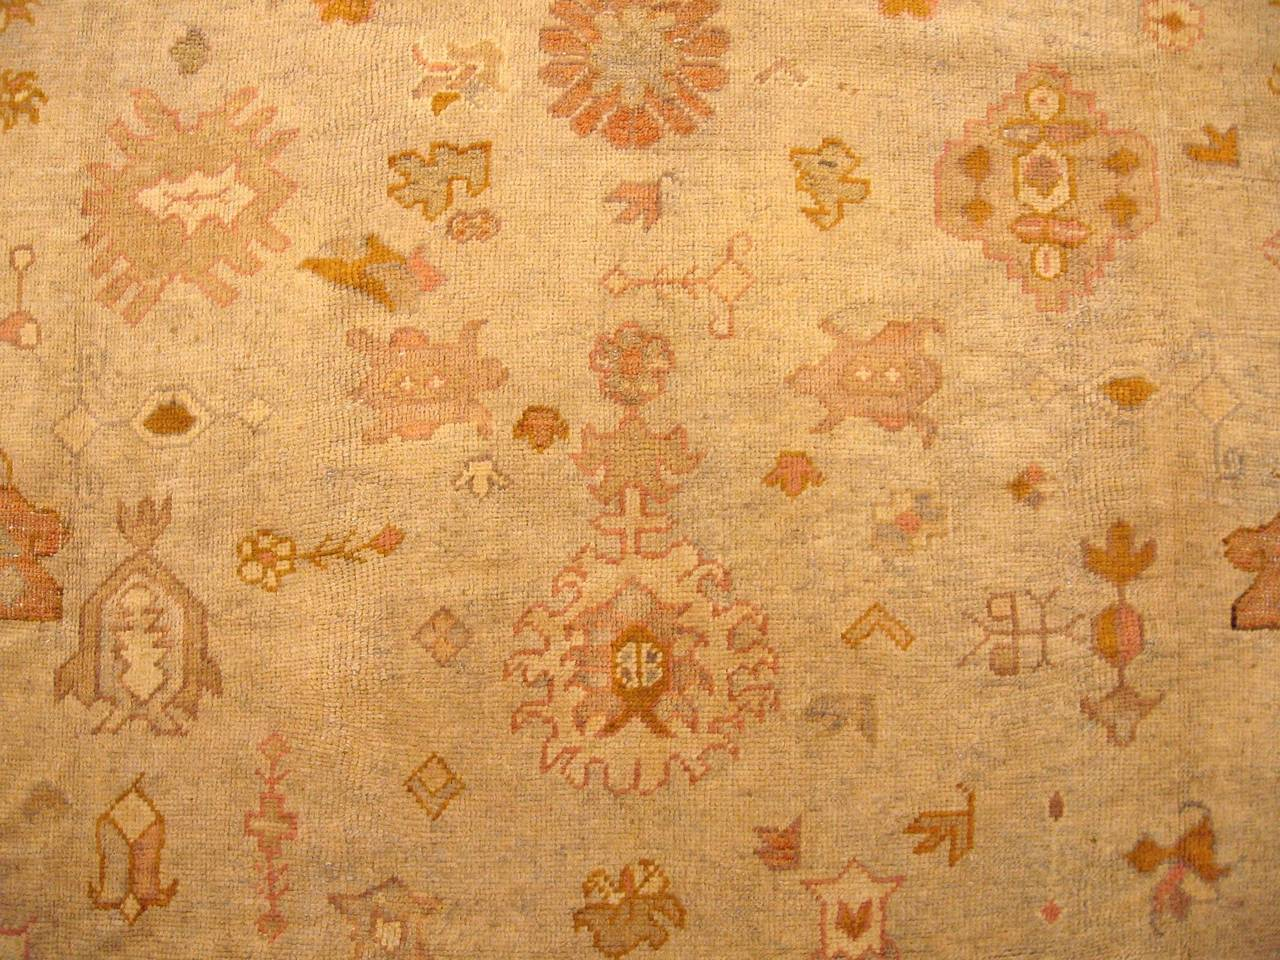 Antique Turkish Oushak Oriental Carpet, Large Size, Soft Colors & Allover Design In Good Condition For Sale In New York, NY